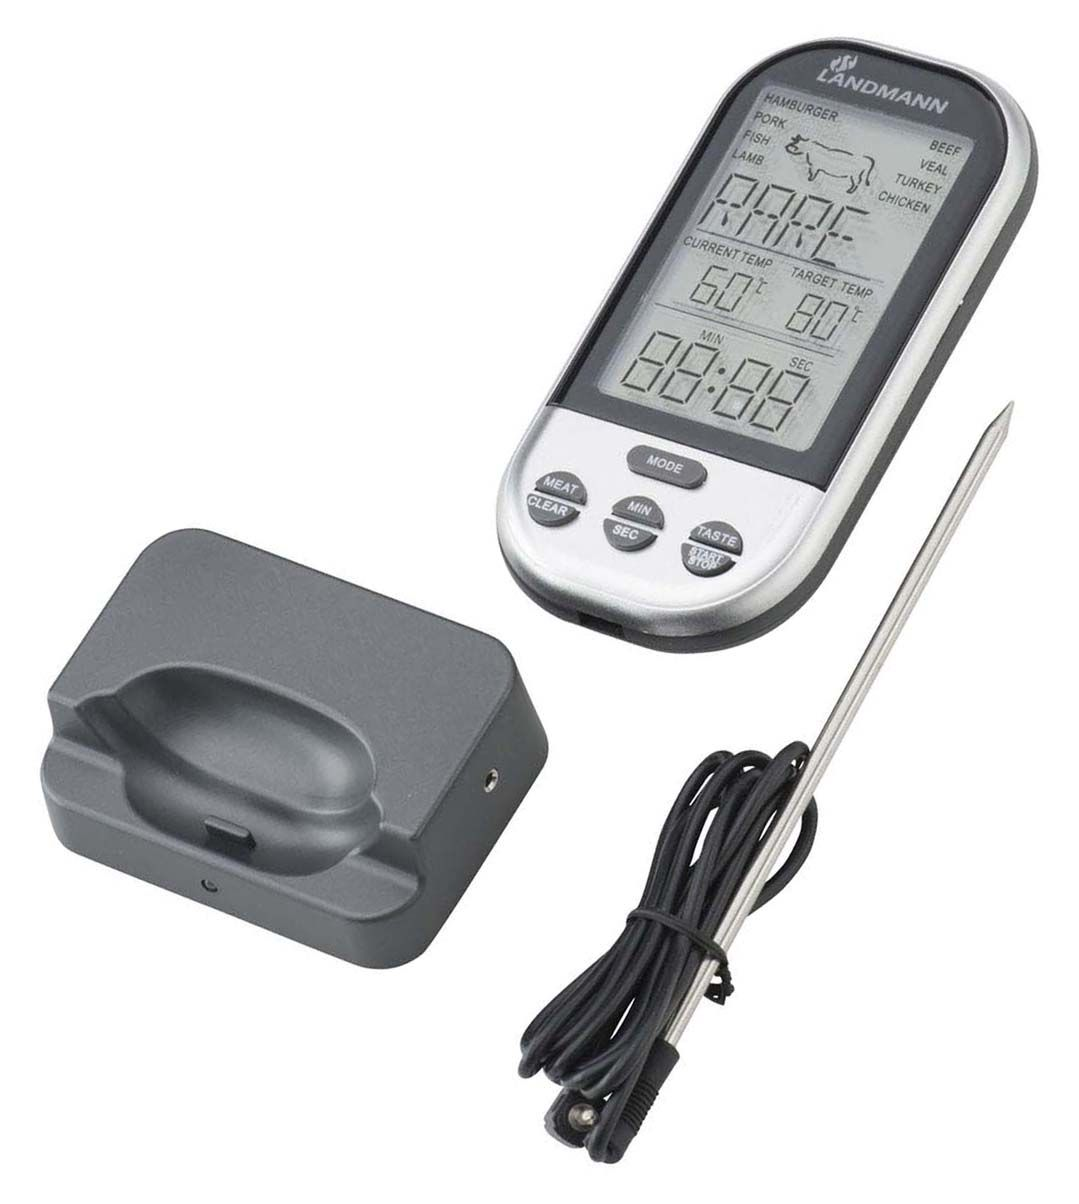 Landmann BBQ Grill Chef Digital Thermometer